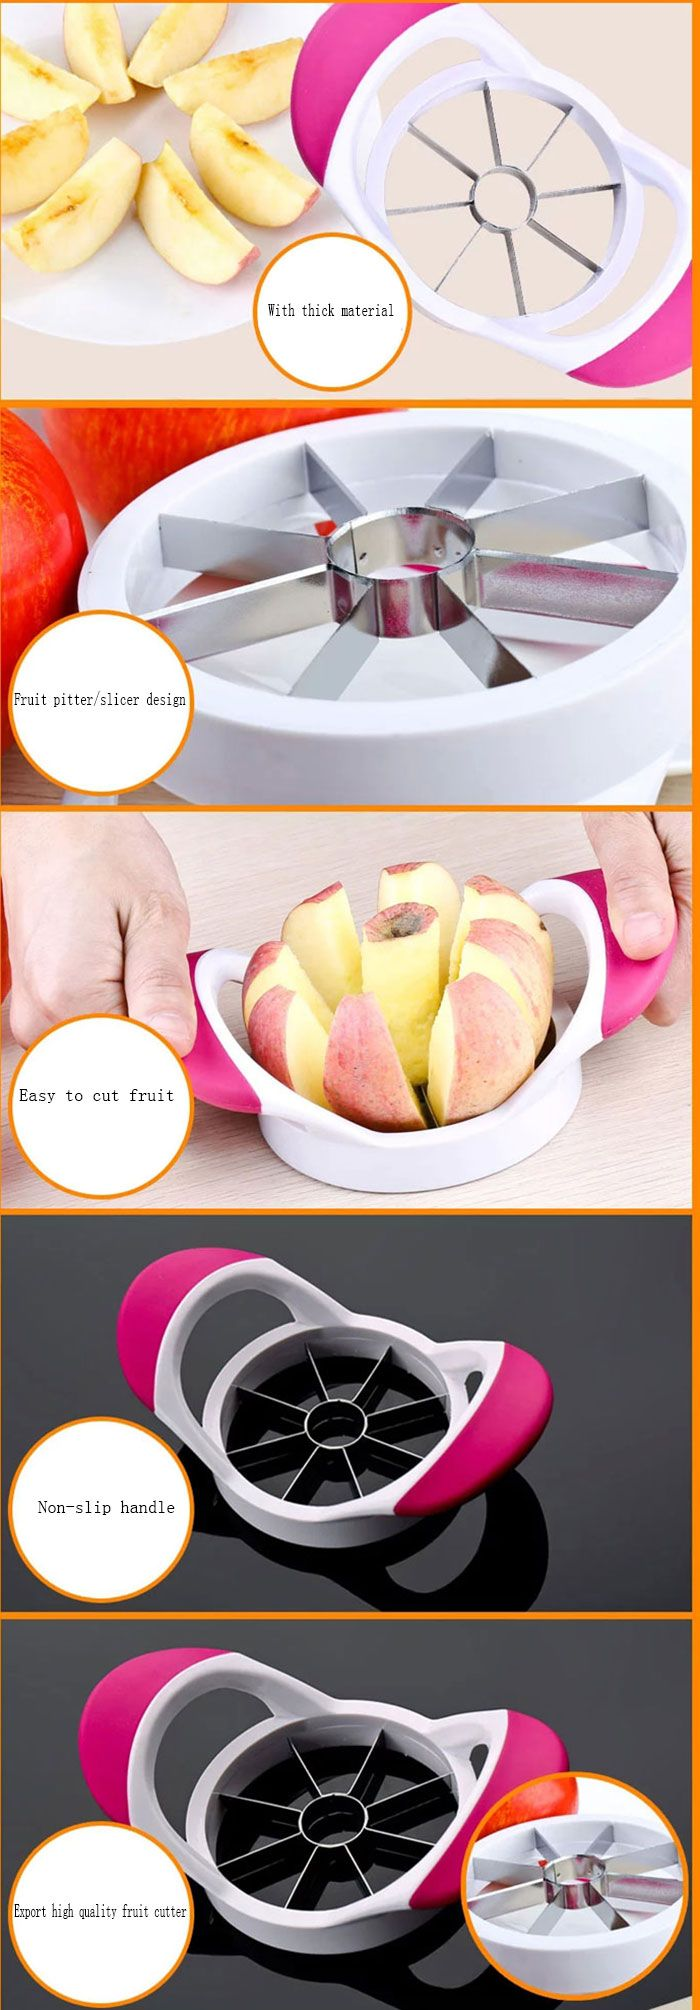 Stainless Steel Apple Cutter Tools Fruit Slicer